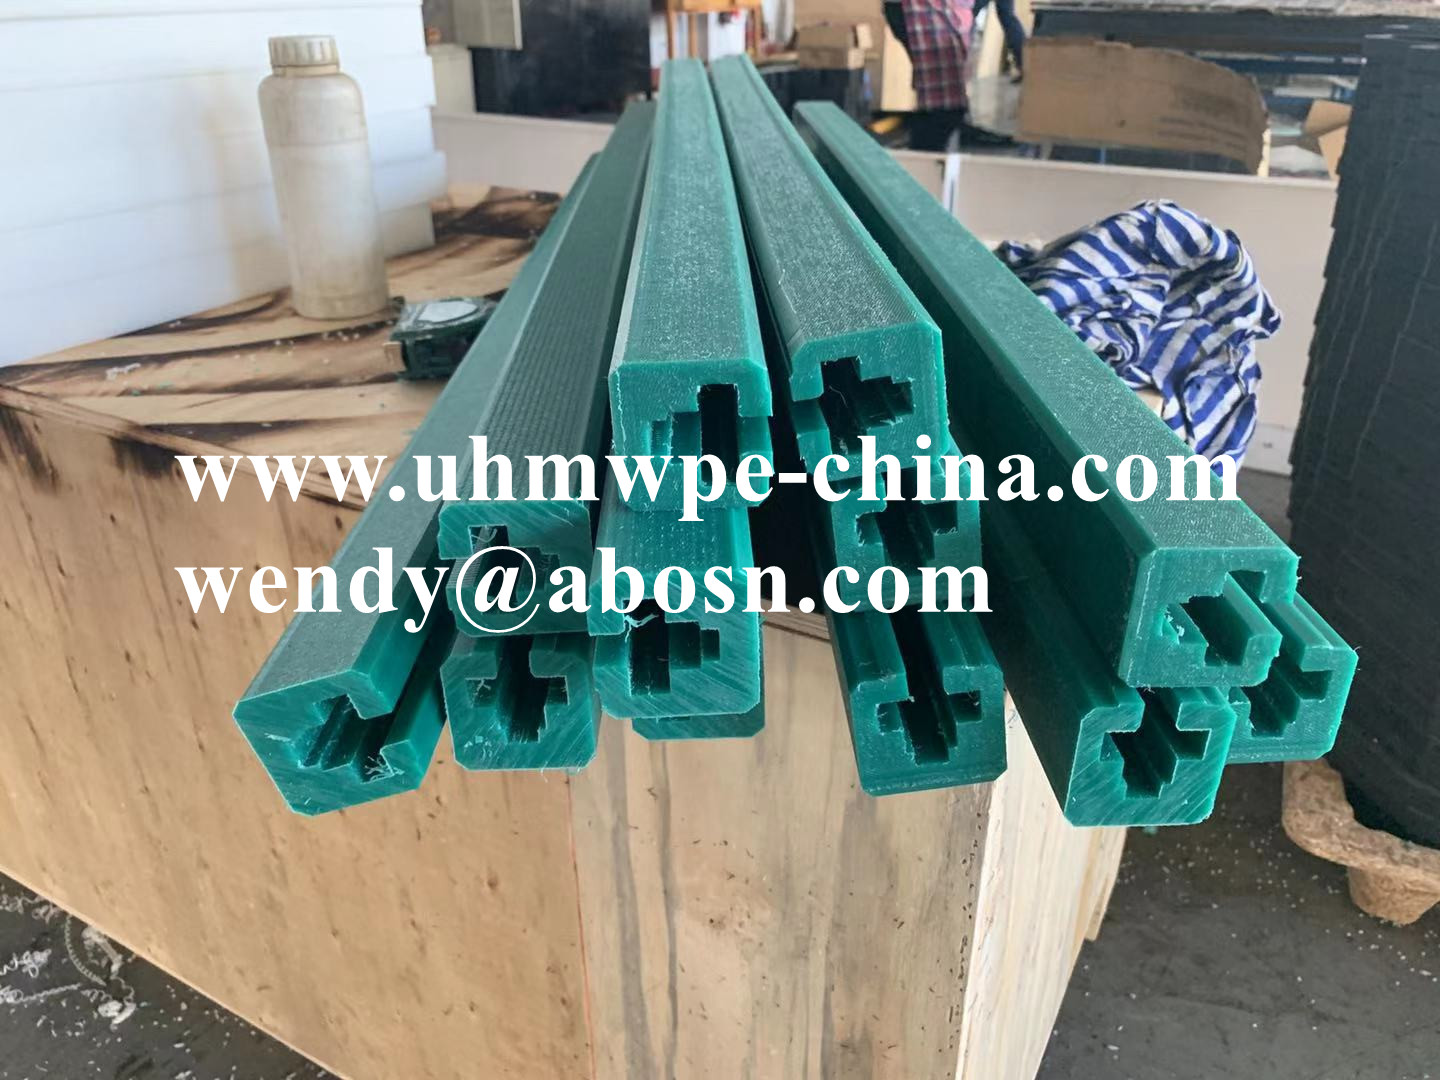 Nylon UHMWPE Wear Pad Chain Guide Slide Rail